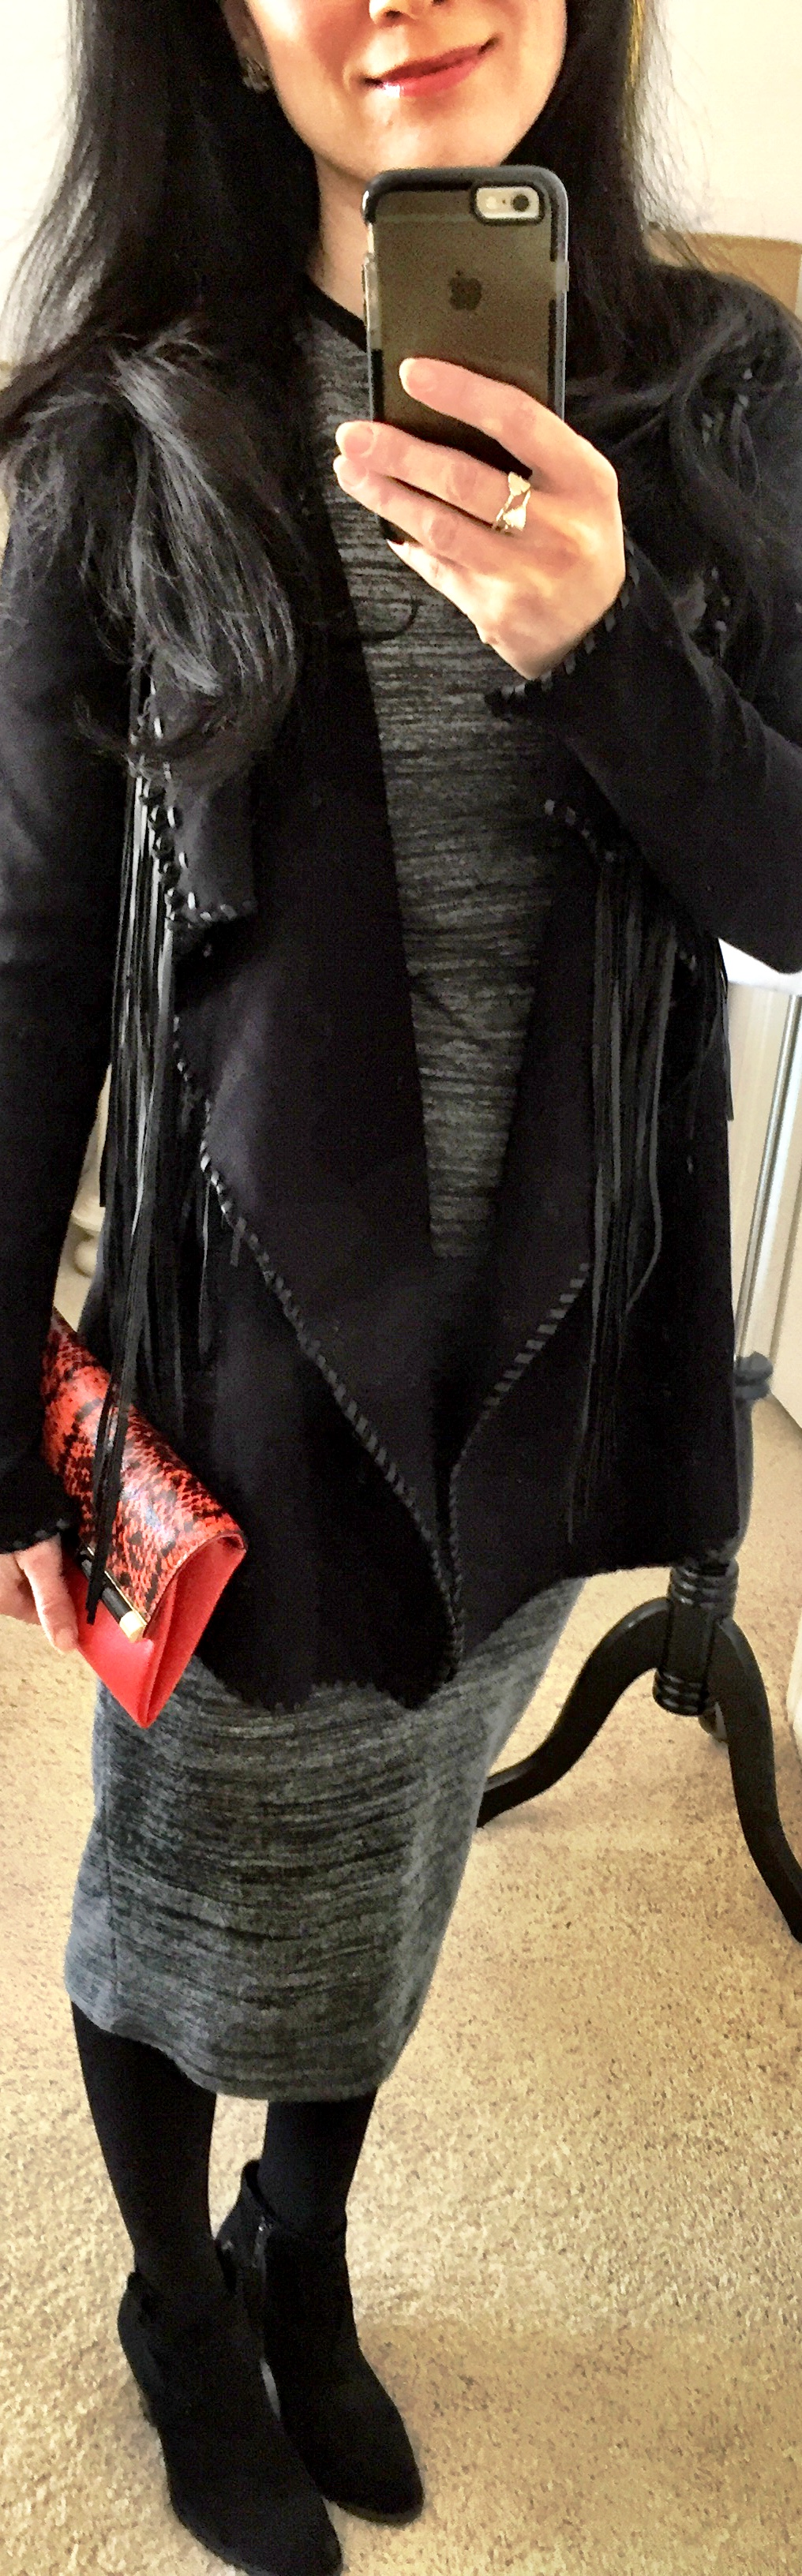 February 2, Tee Shirt Dress with Fringe Knit Jacket. Clutch by DVF